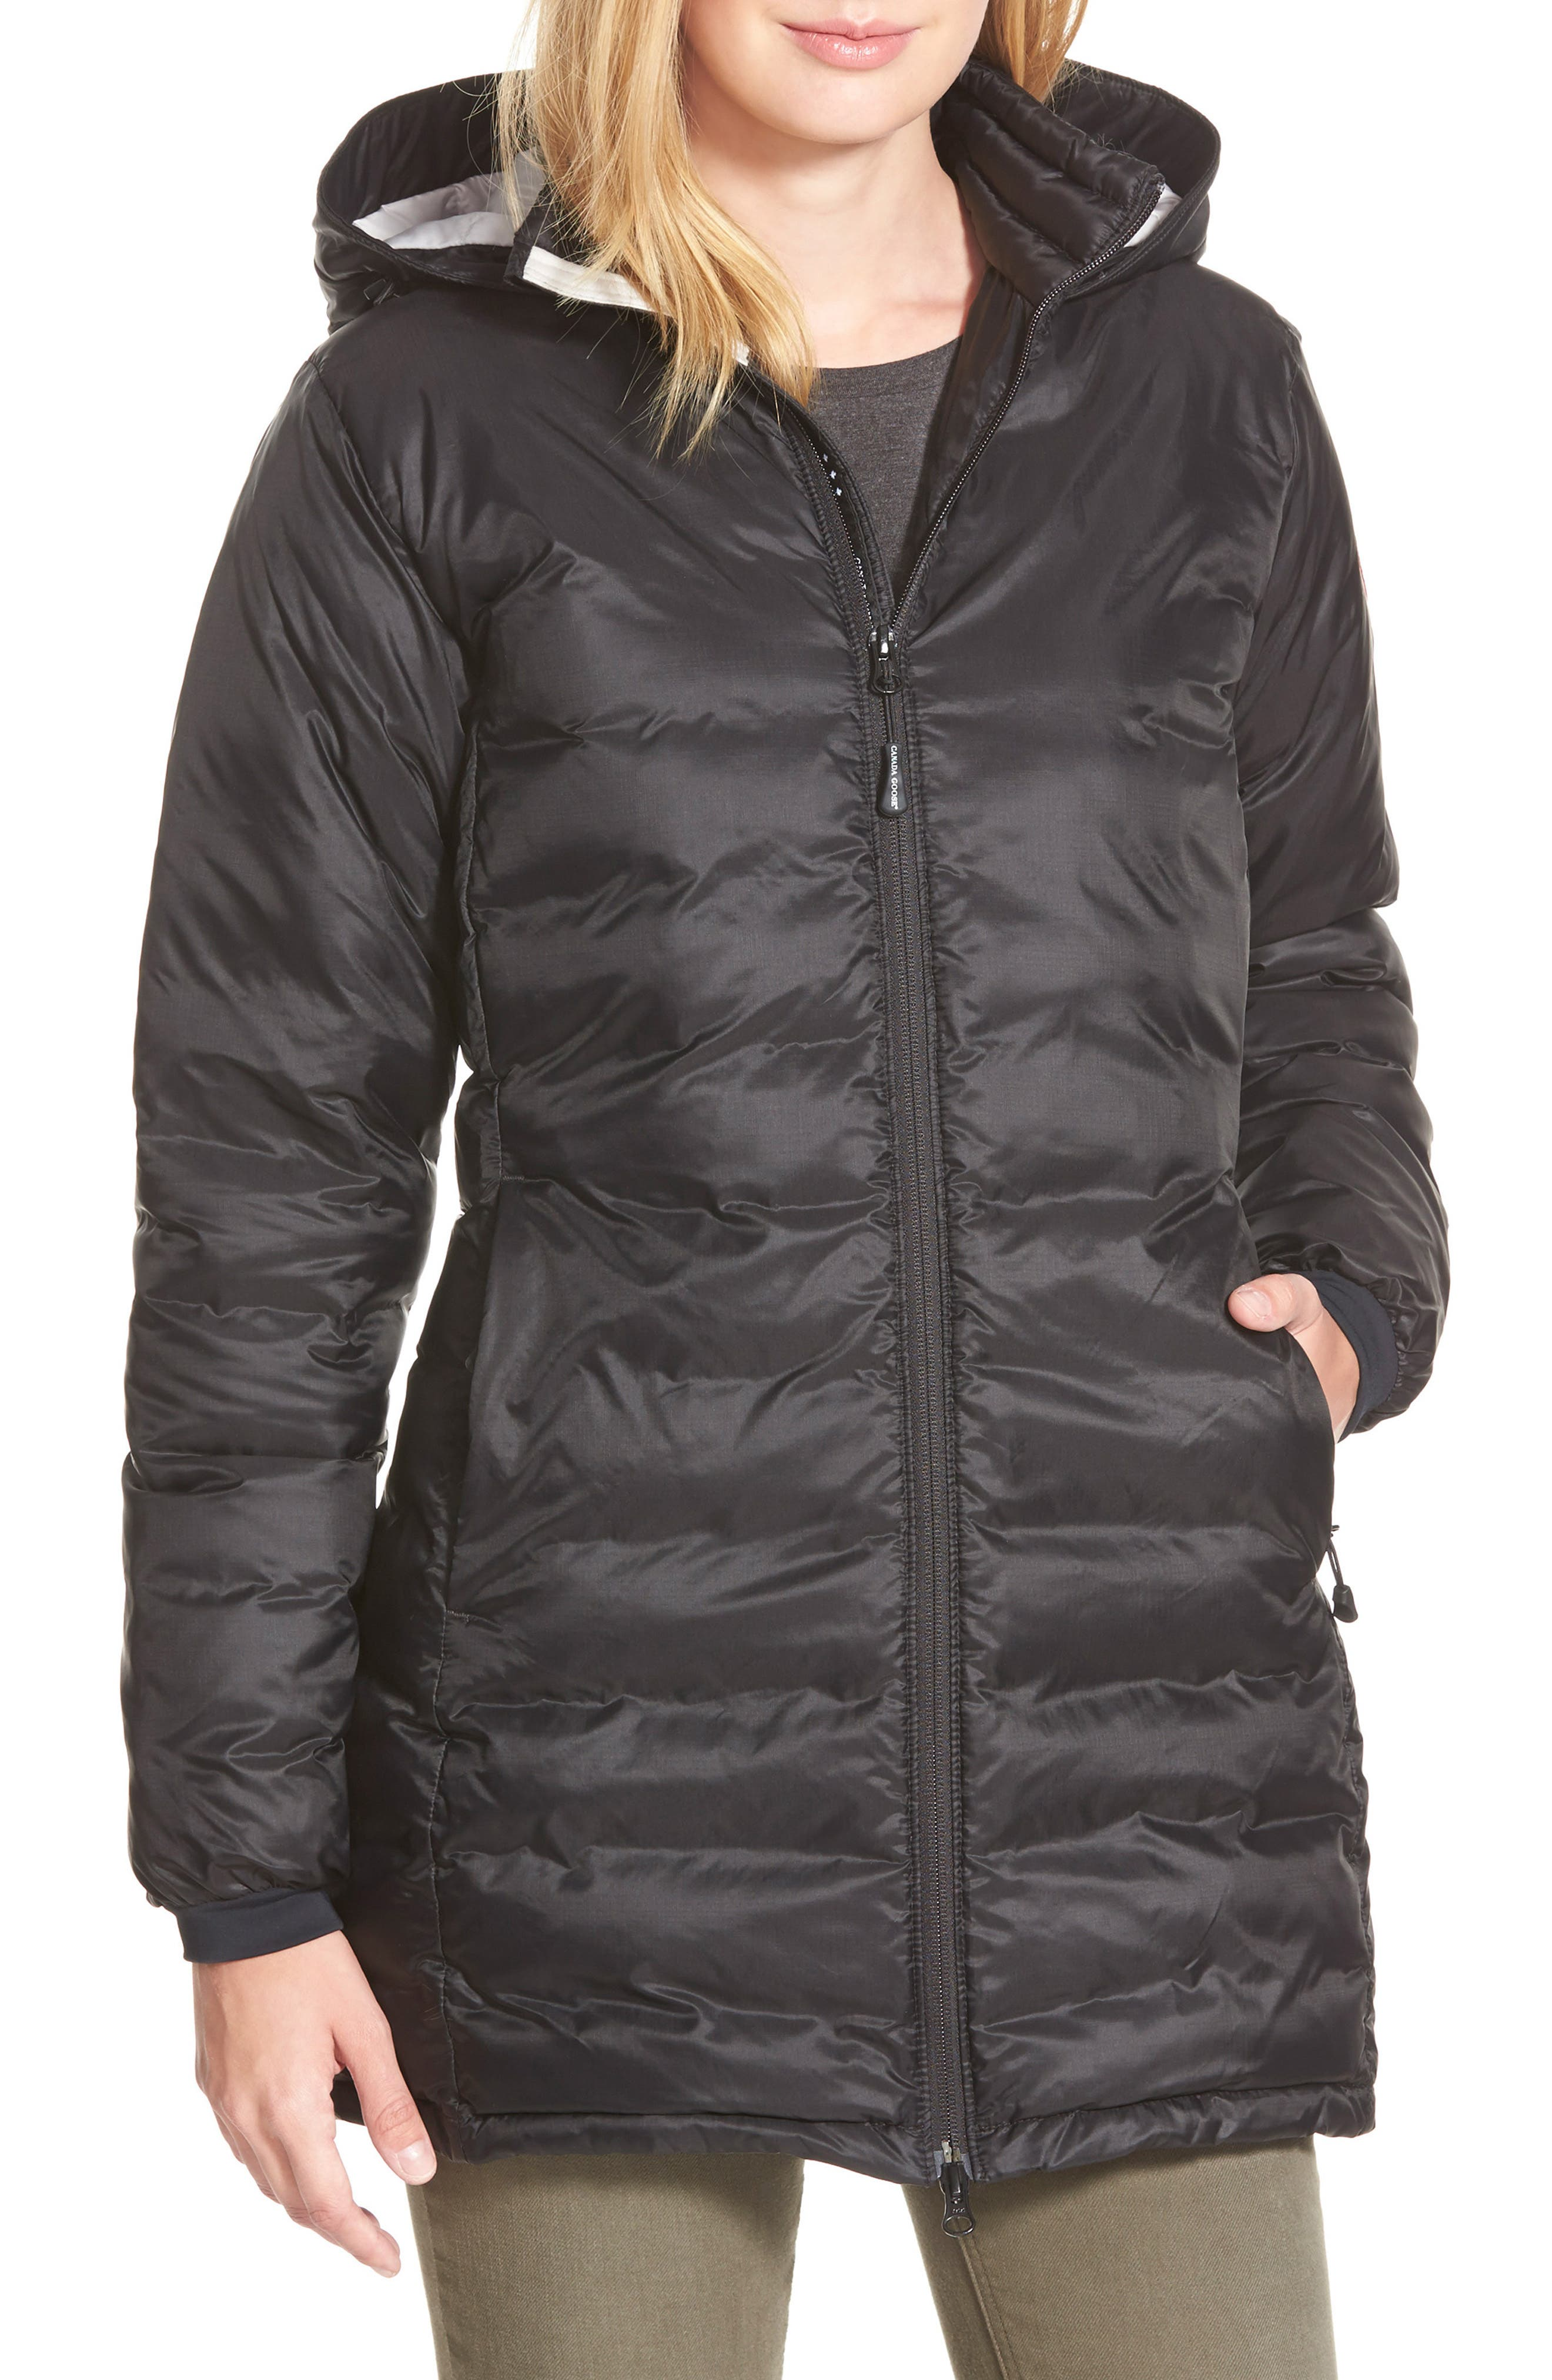 CANADA GOOSE, 'Camp' Slim Fit Hooded Packable Down Jacket, Alternate thumbnail 5, color, BLACK